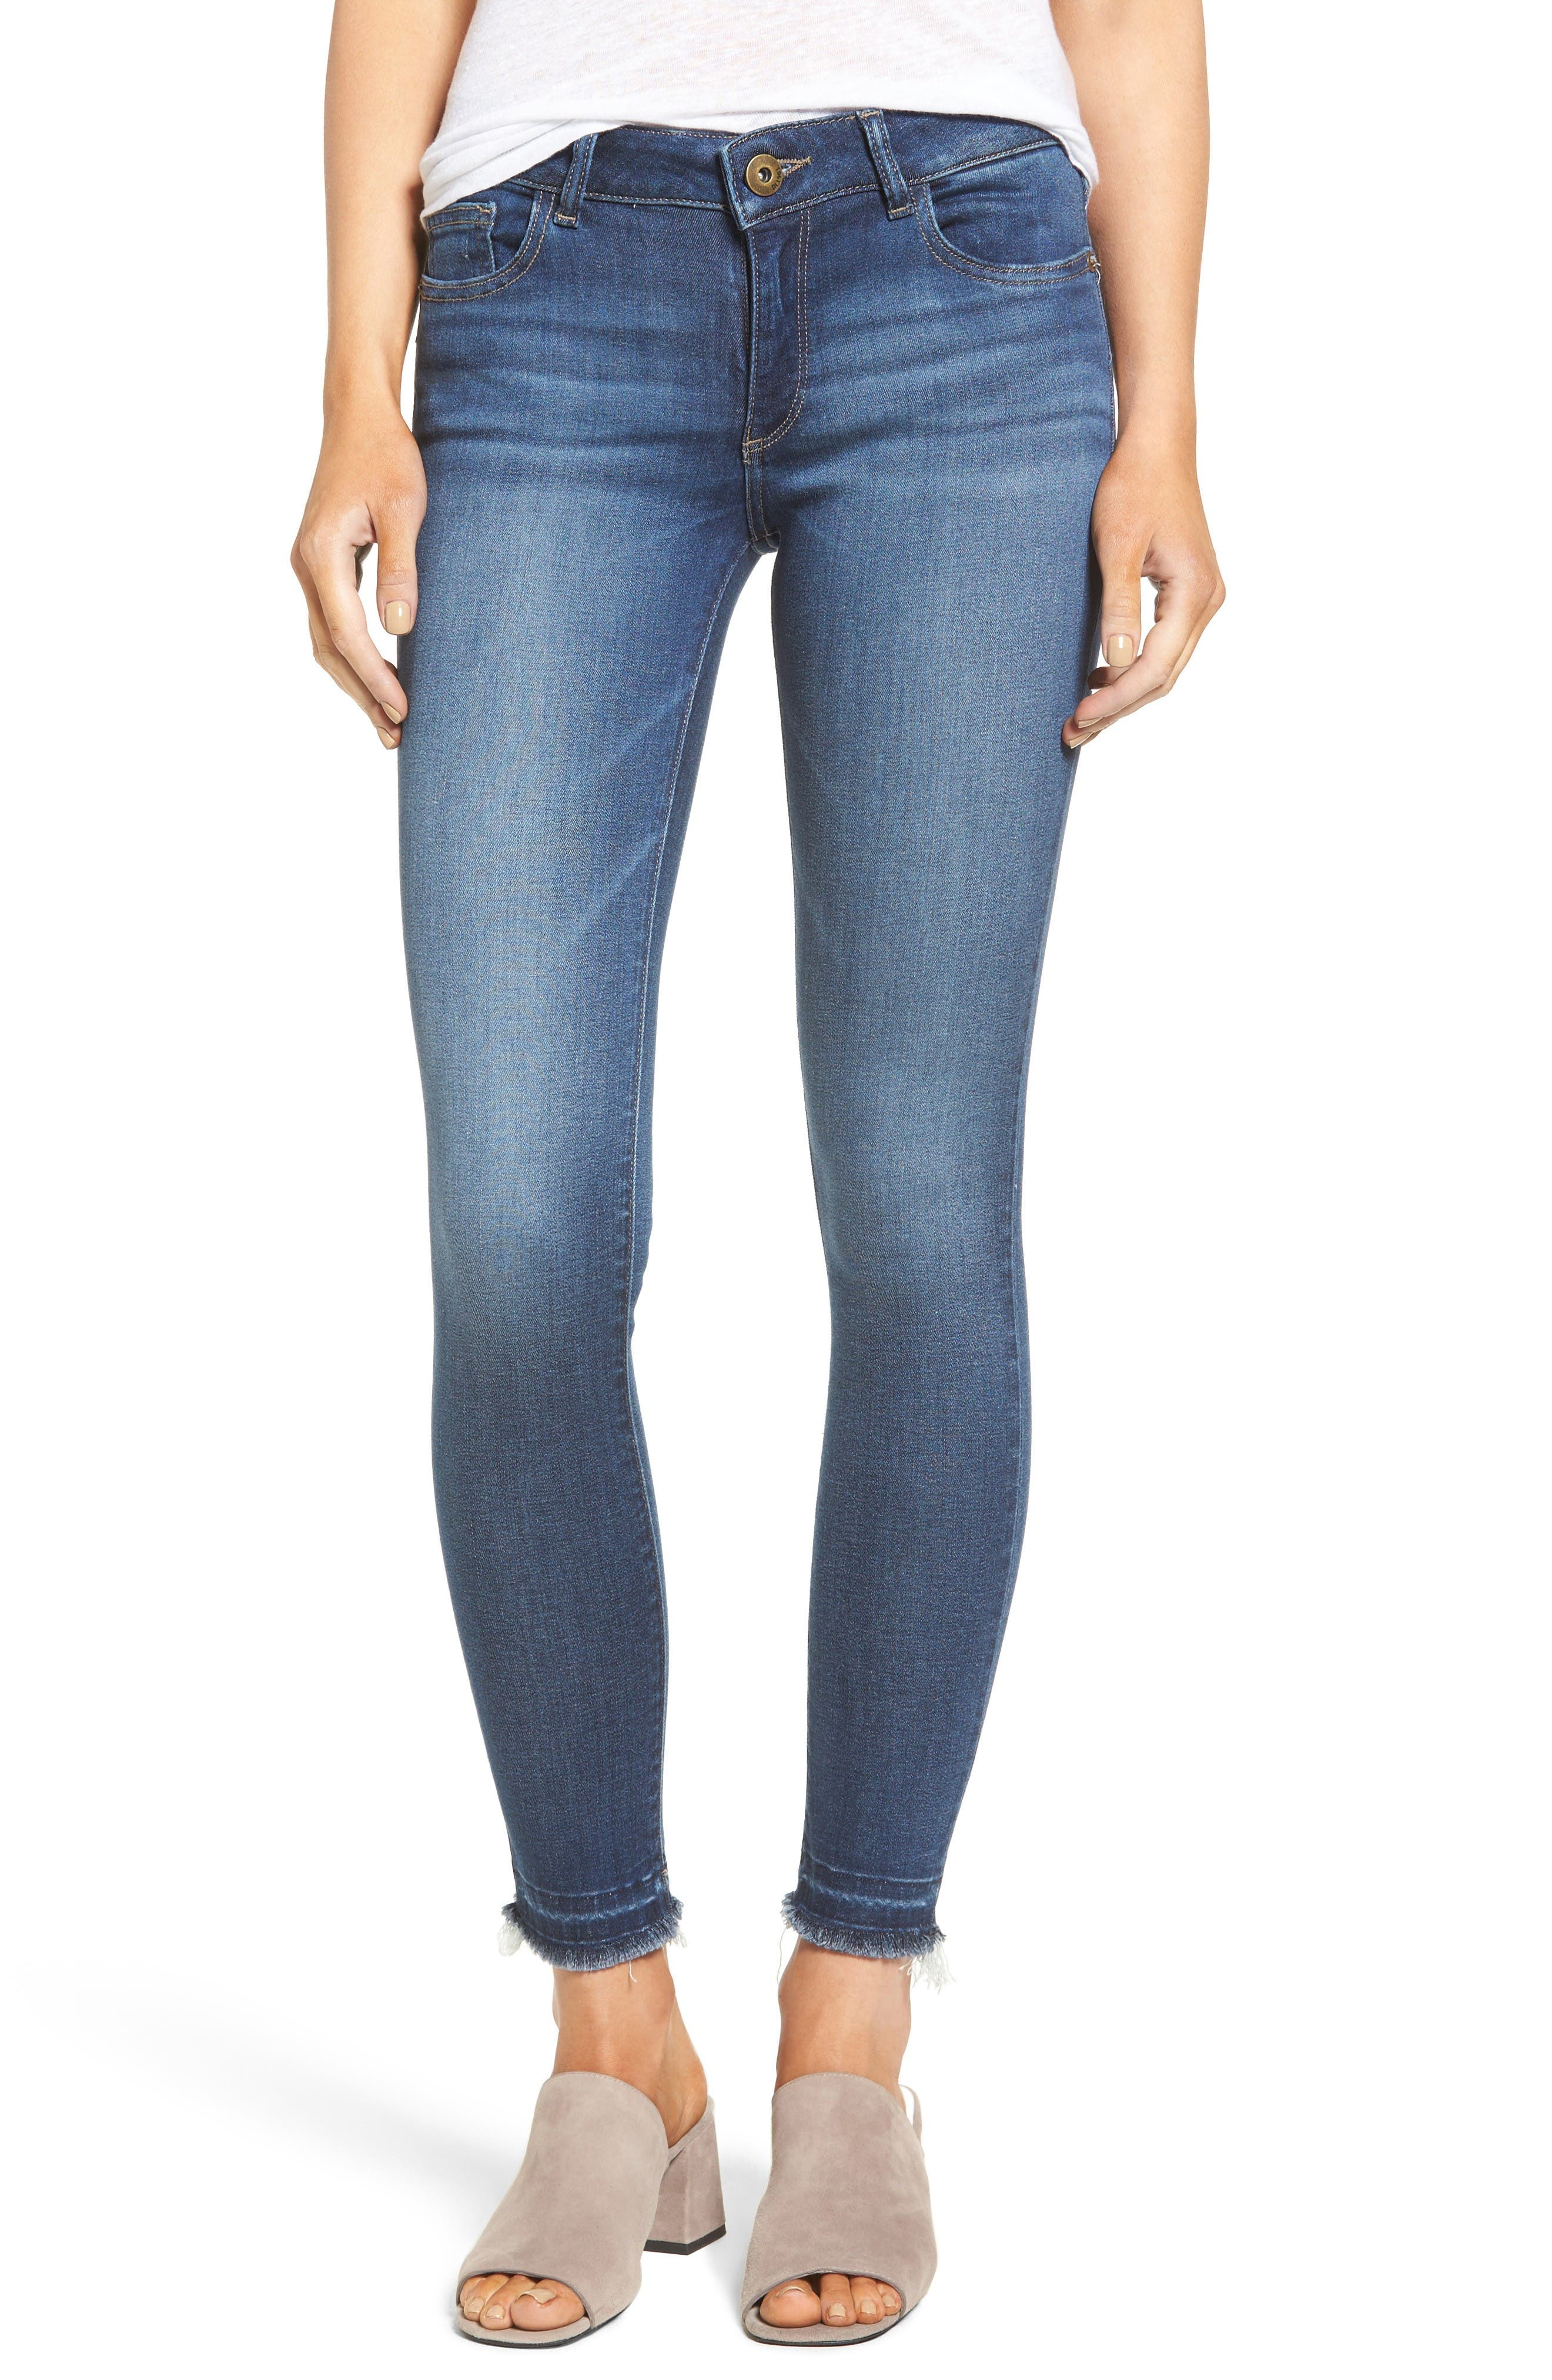 Alternate Image 1 Selected - DL1961 Emma Power Legging Jeans (Quilter)